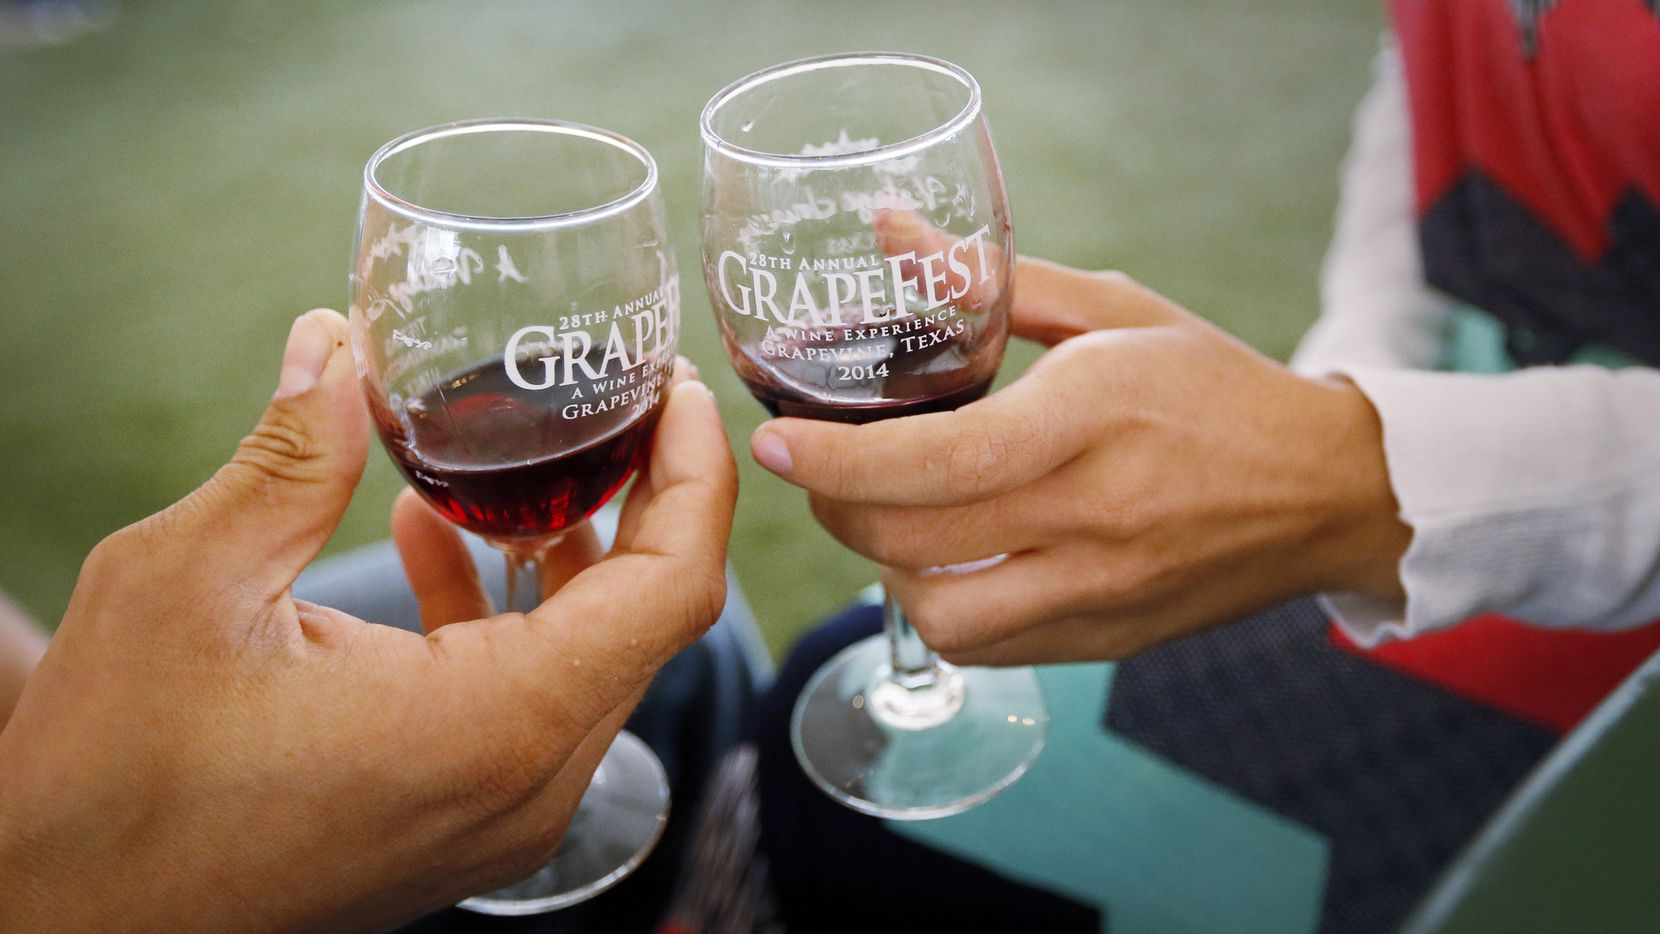 In this 2014 file photo, Wayne and his fiancee Diana Reese, from Houston, TX, toss their wine glasses during the Grapefest along Main Street in Grapevine, TX.